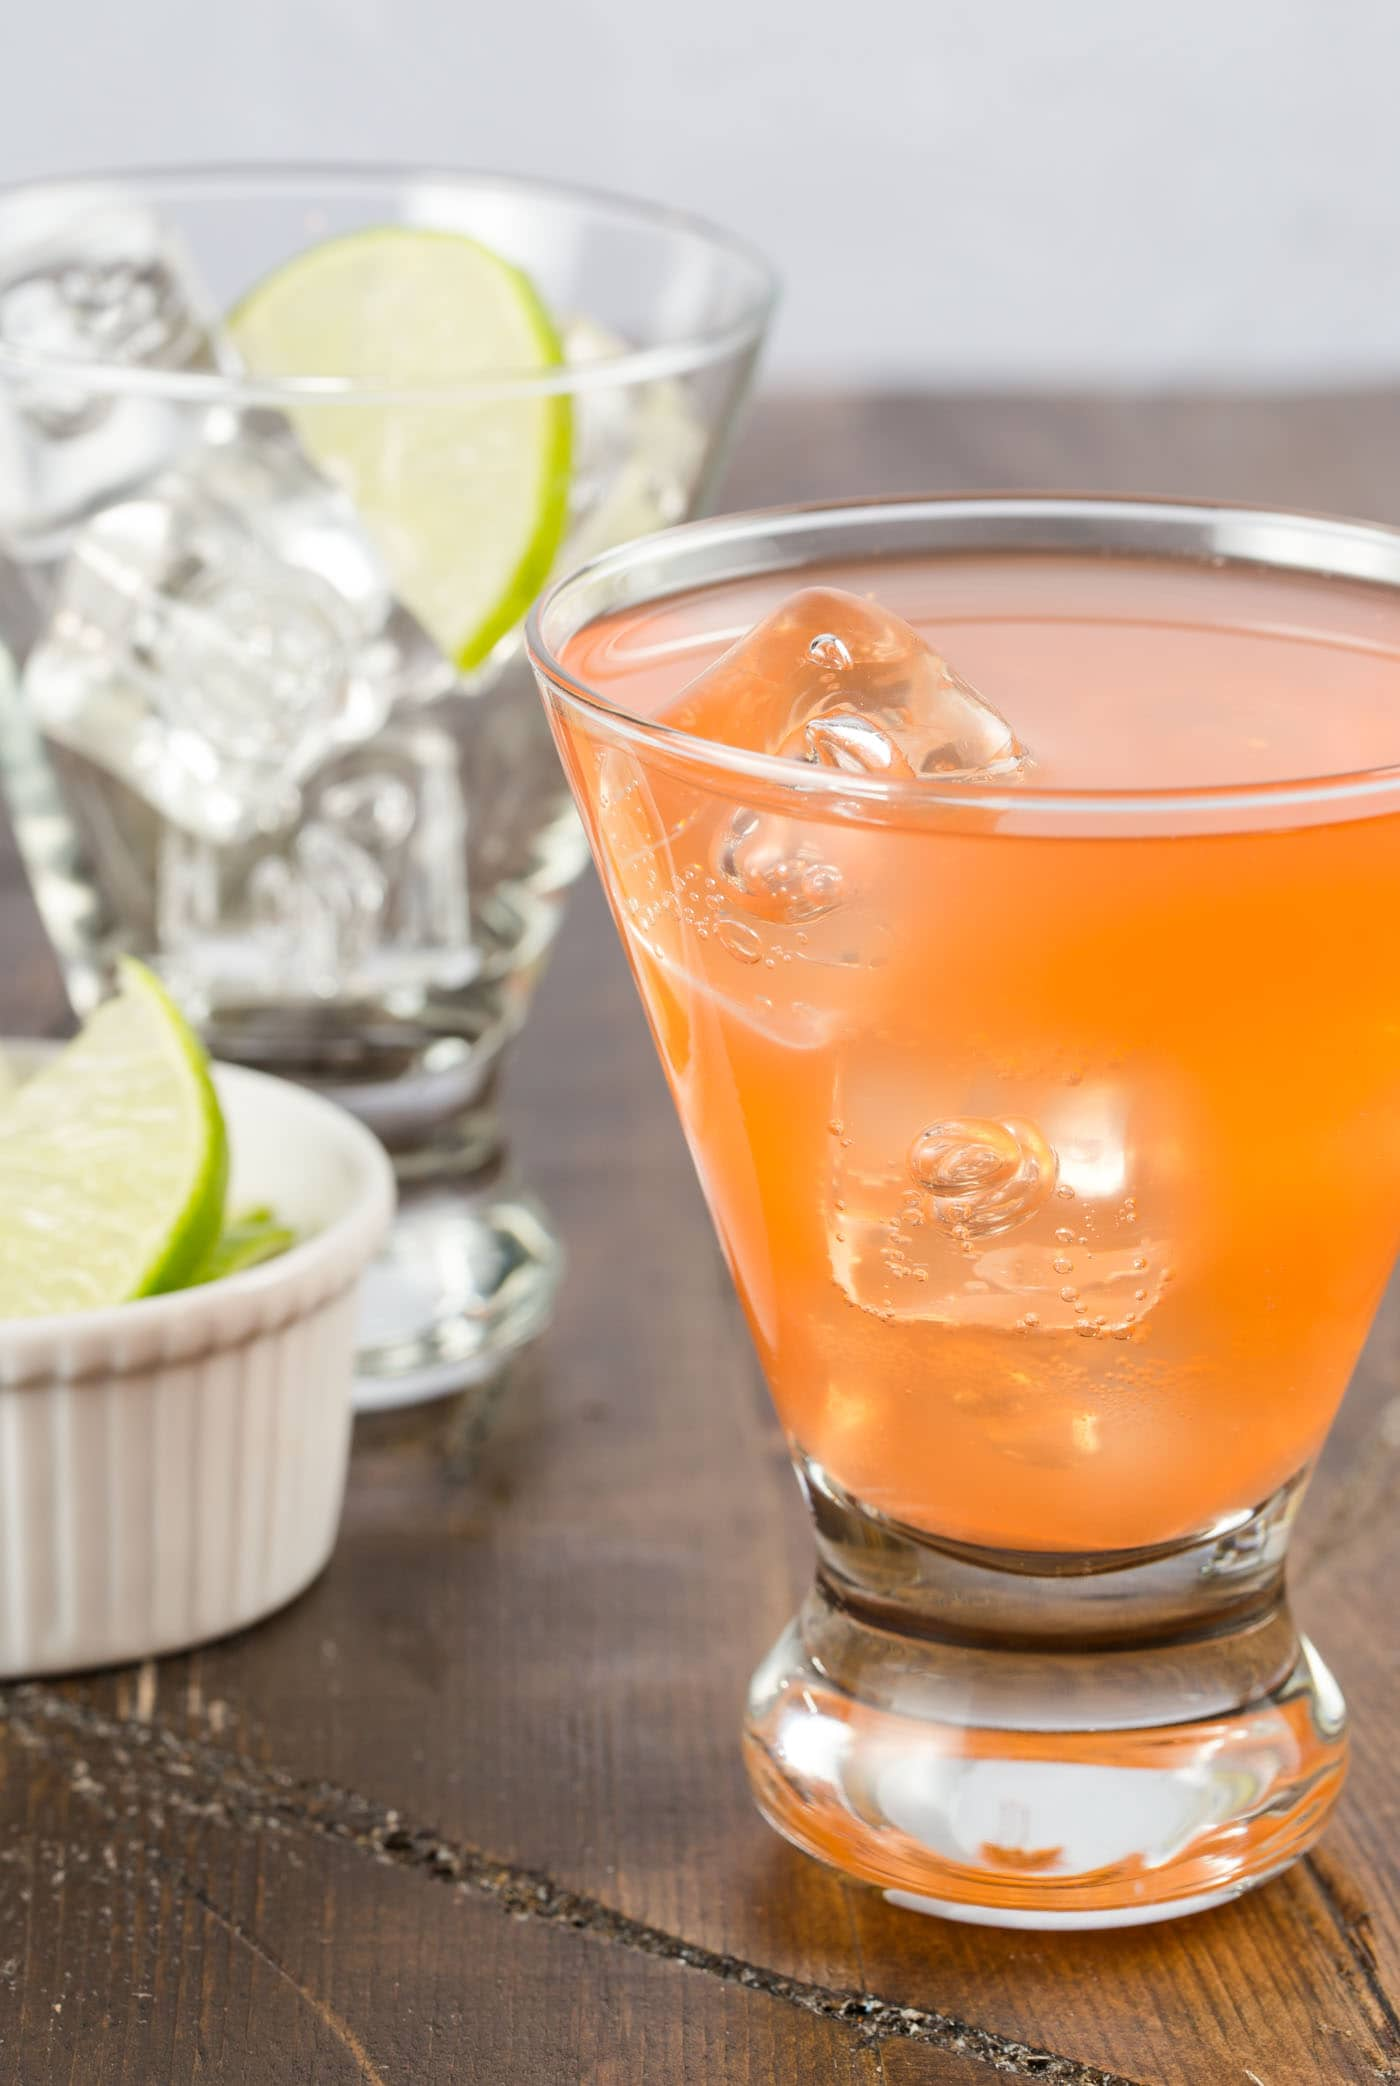 Looking for a fun cocktail to serve this spring? If you are a gin lover, this cocktail is for you! The Aperol Gin Cocktail is a refreshing drink filled with gin, cucumber and lime.